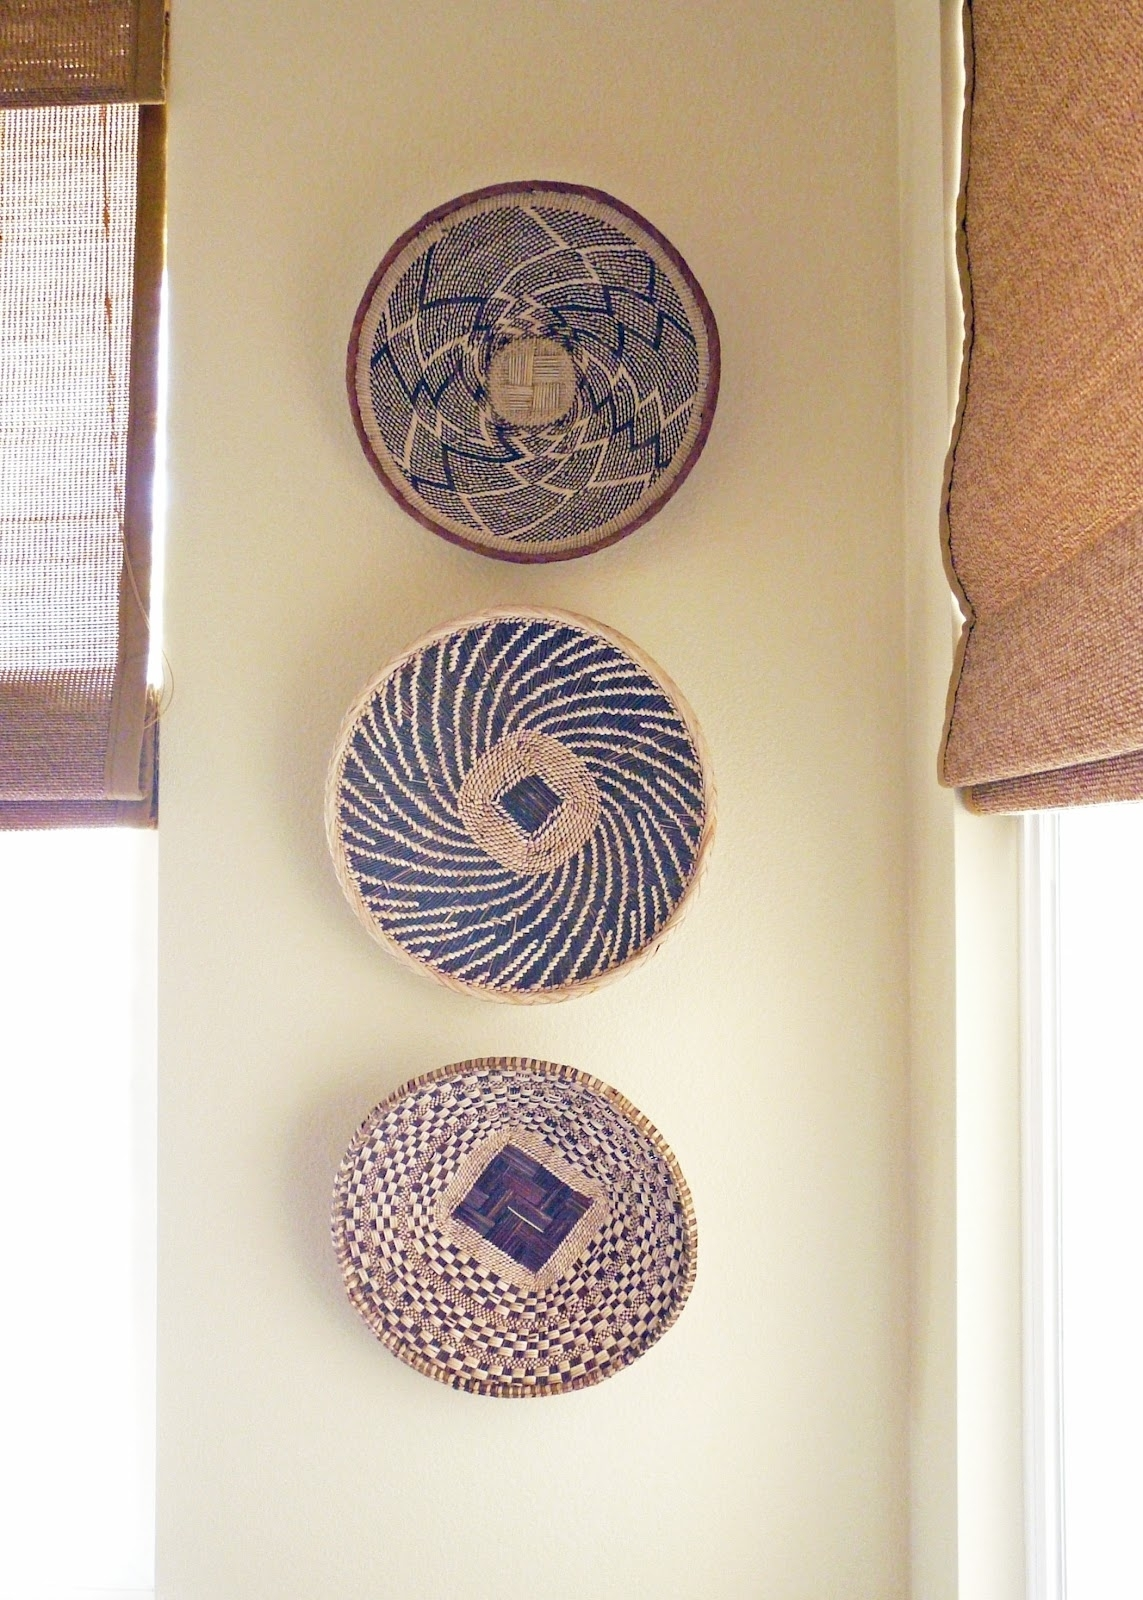 Wall Decor: Good Look Baskets As Wall Decor Woven Wall Baskets In Recent African Wall Accents (View 4 of 15)